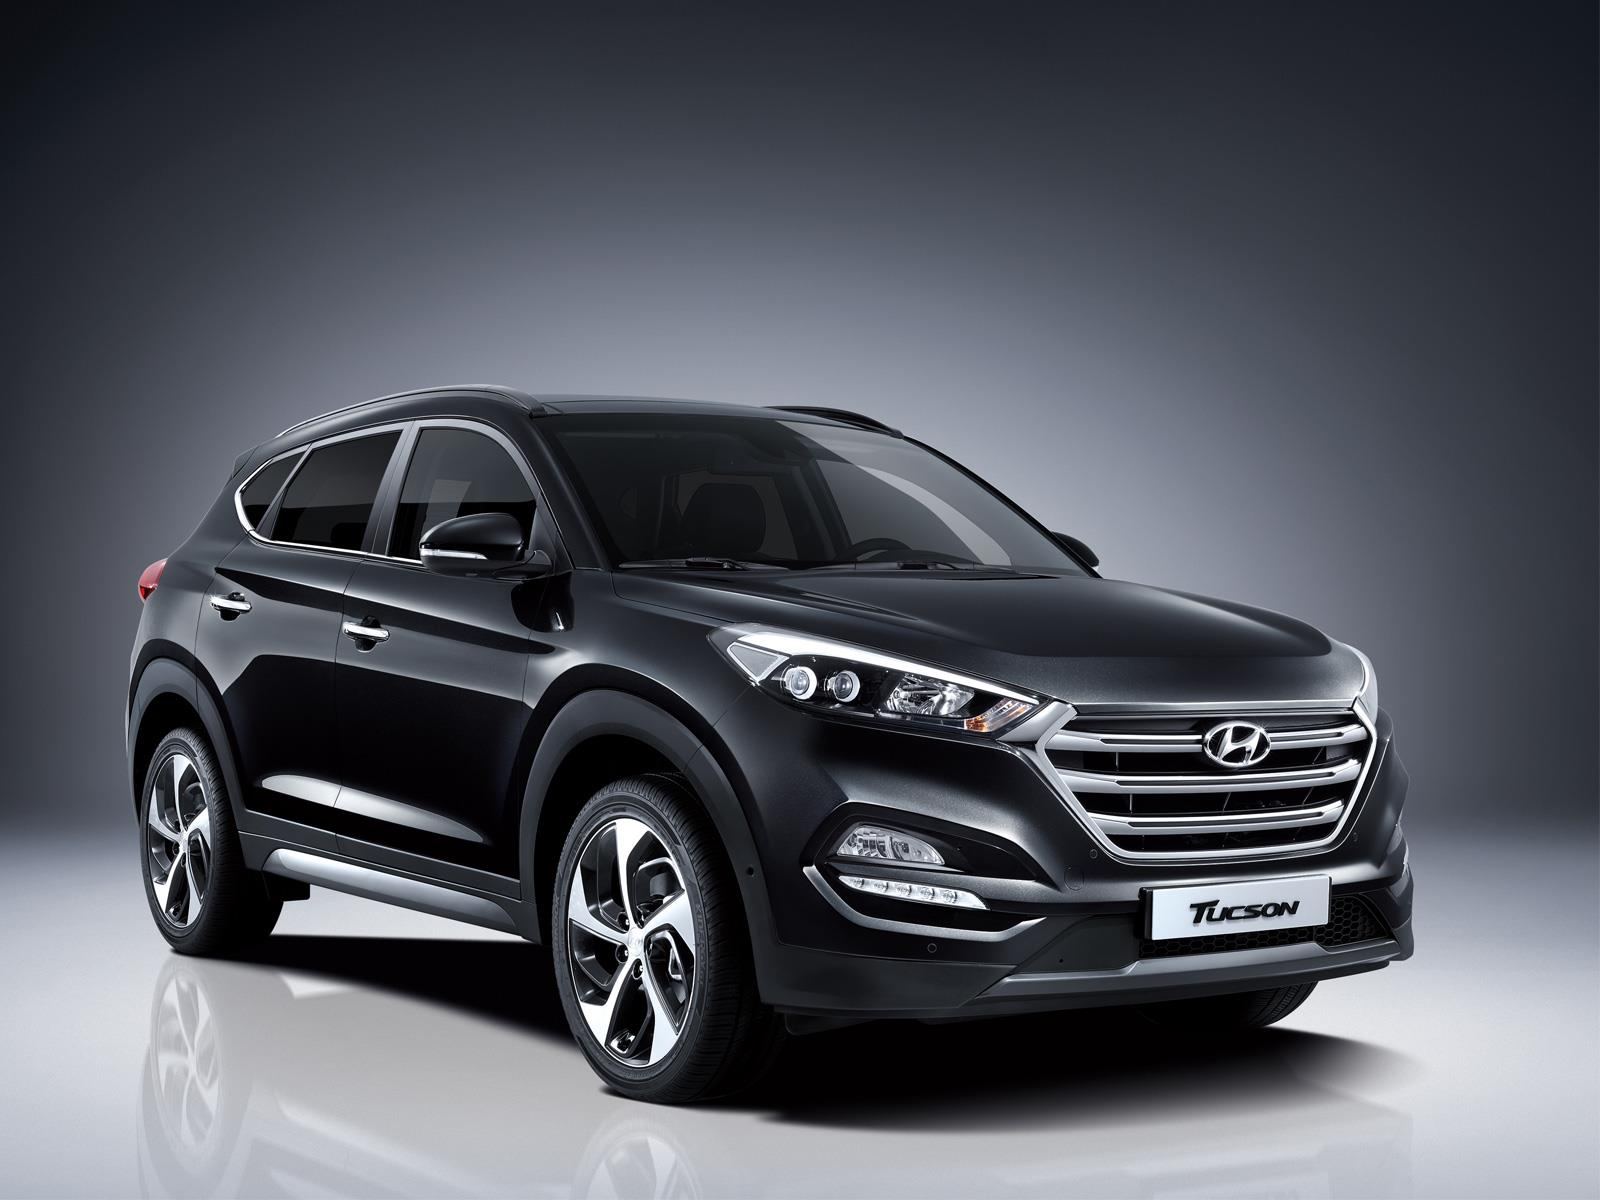 hyundai tucson 2016 a prueba. Black Bedroom Furniture Sets. Home Design Ideas